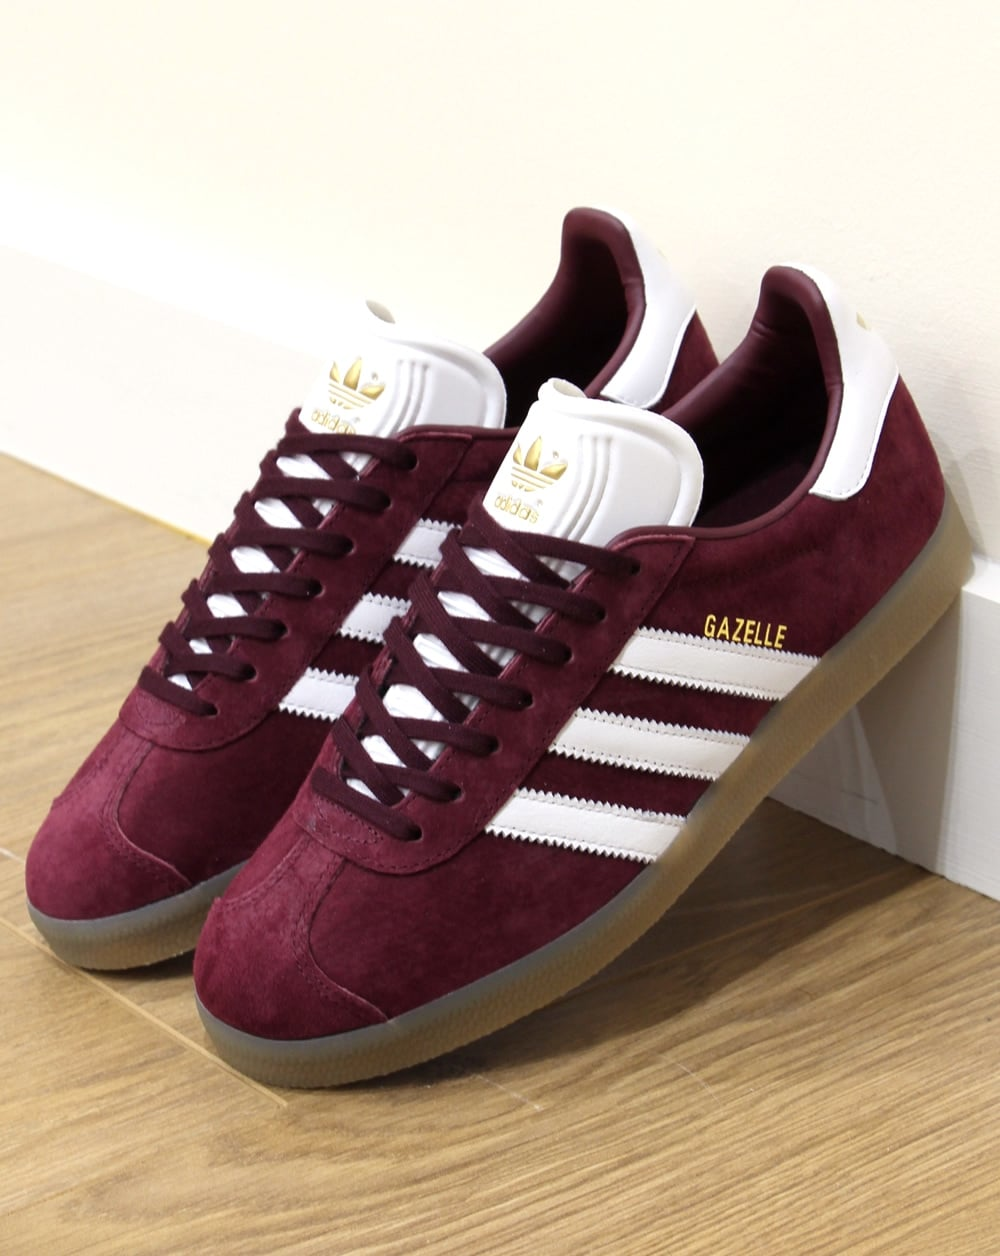 shoes for cheap 100% high quality fashion Adidas Gazelle Trainers Maroon/White/Gum